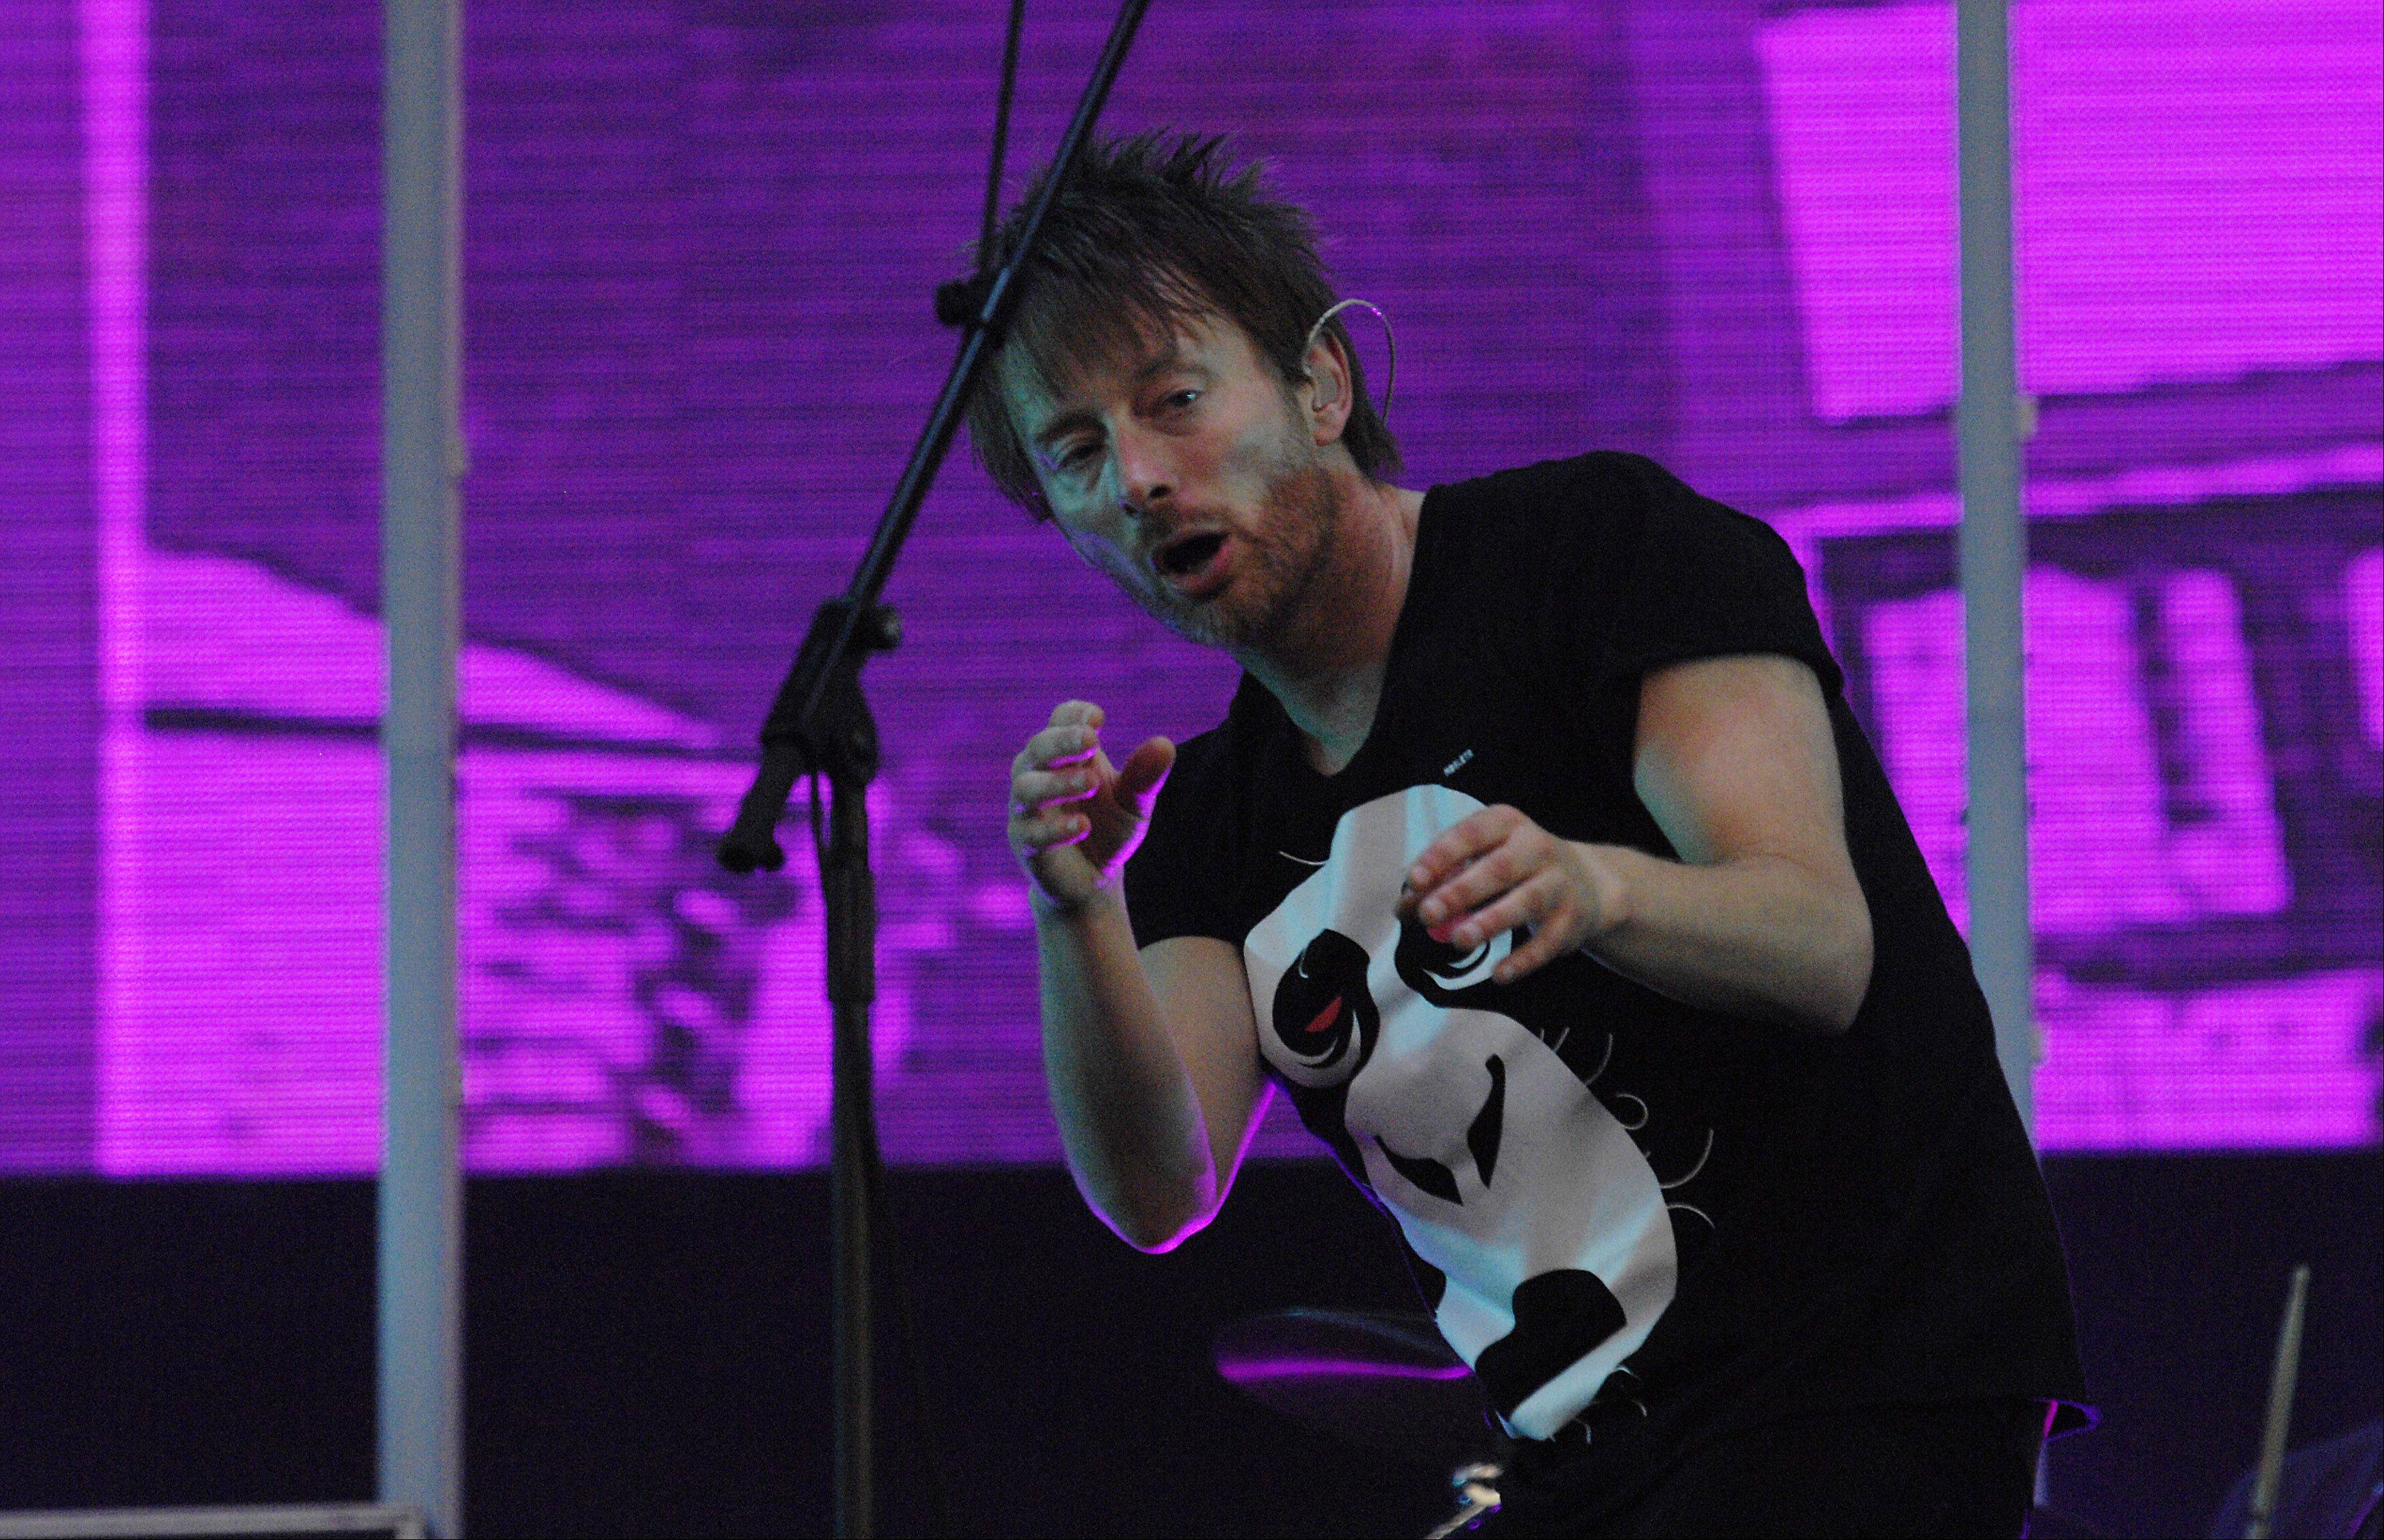 Radiohead front man Thom Yorke performs at Lollapalooza in 2011.